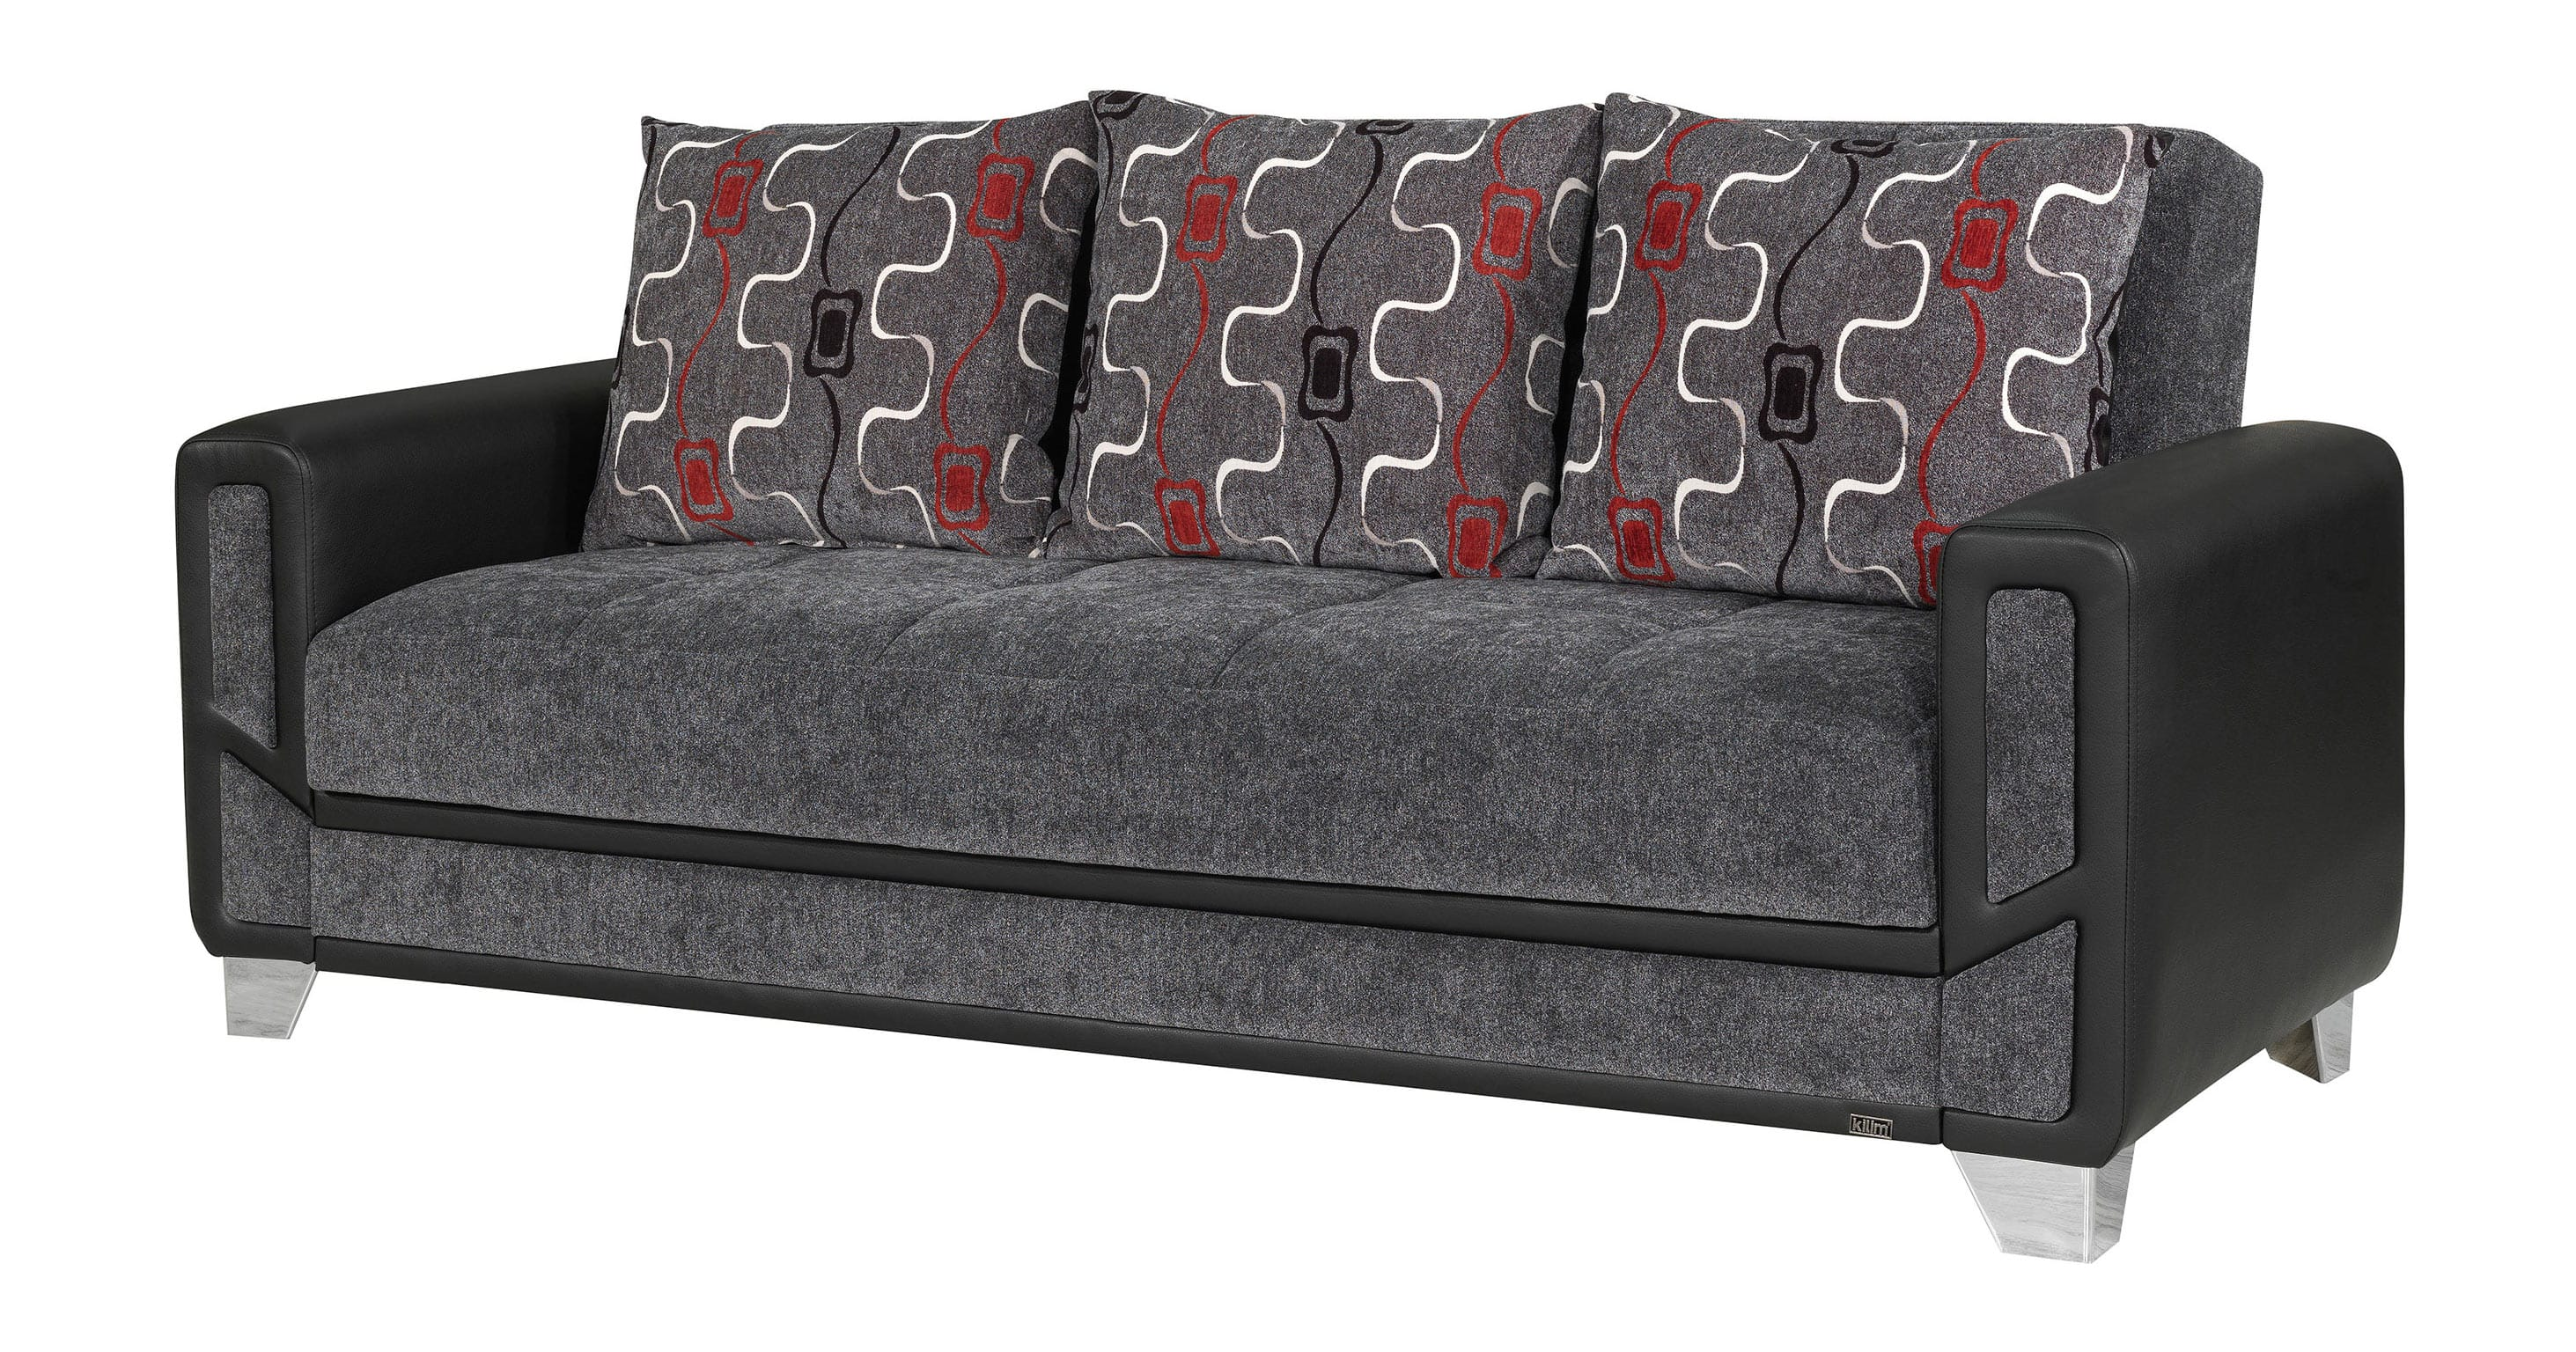 Fabulous Mondo Modern Gray Convertible Sofa Bed By Casamode Ibusinesslaw Wood Chair Design Ideas Ibusinesslaworg